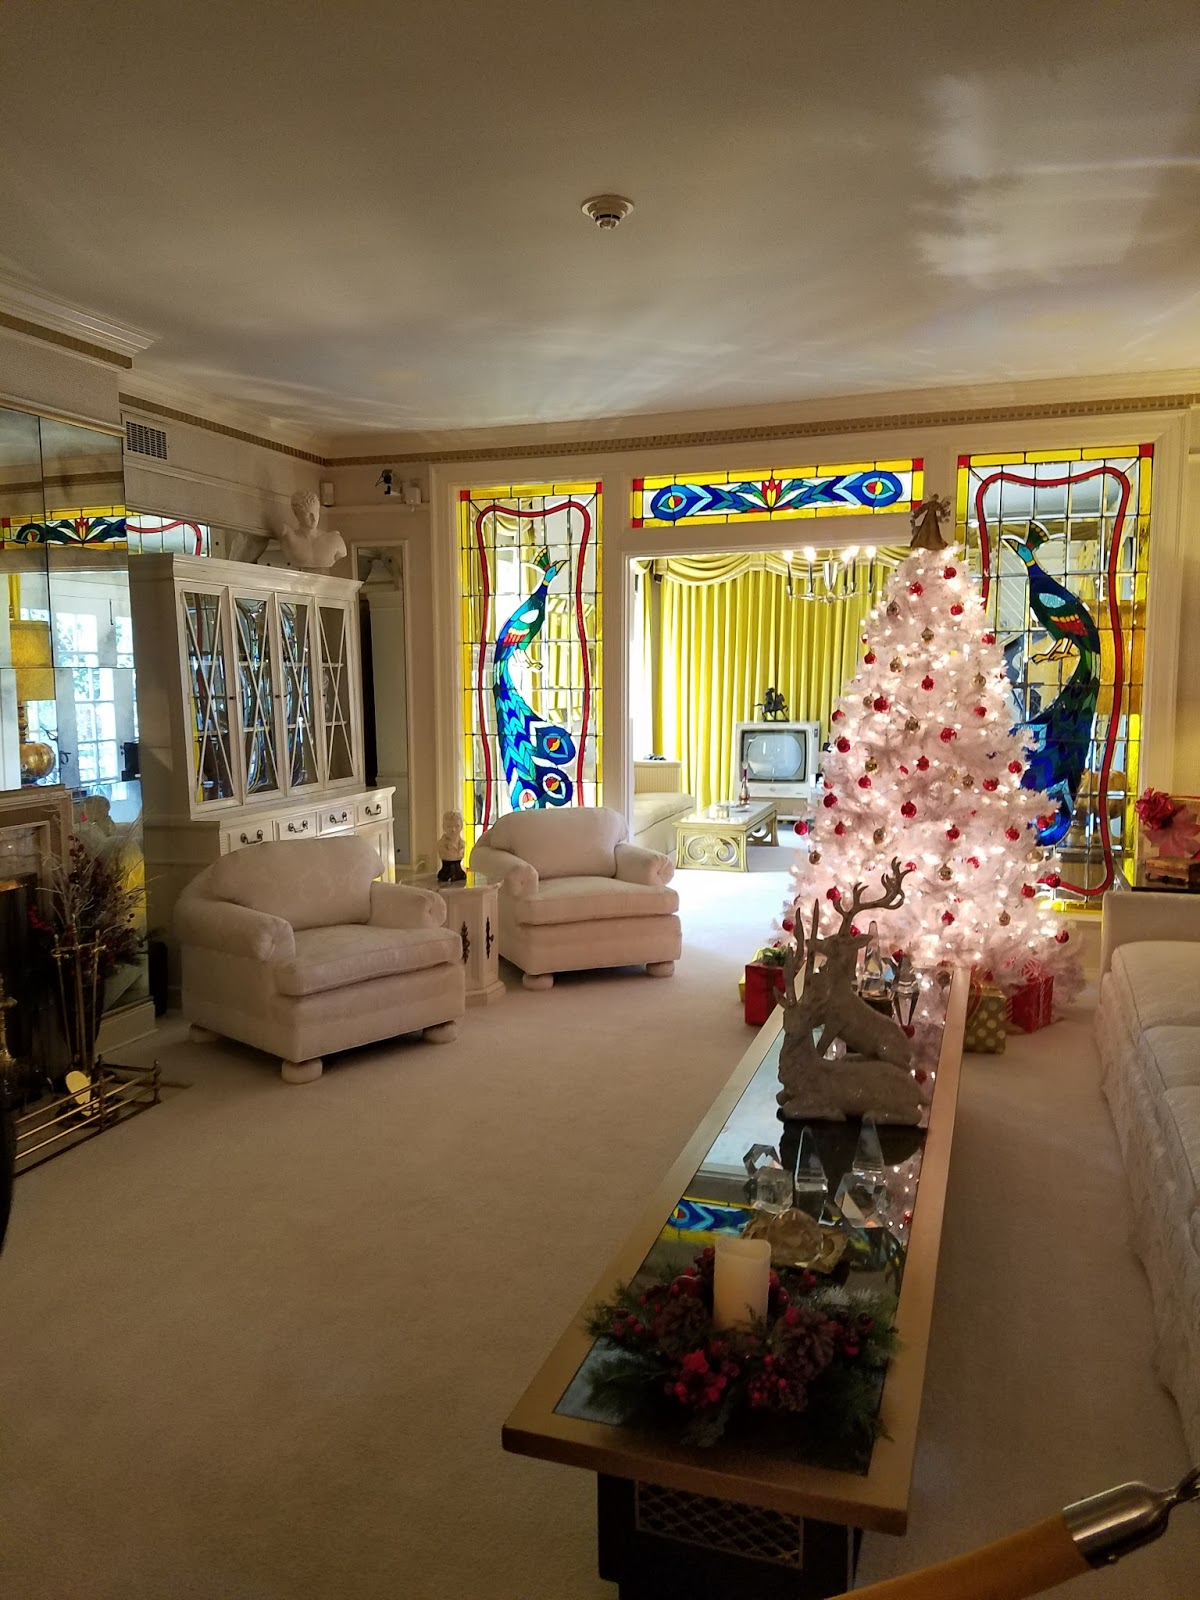 JustJewels4U: Jewels Visits: Graceland Tour-The Home Of Elvis Presley